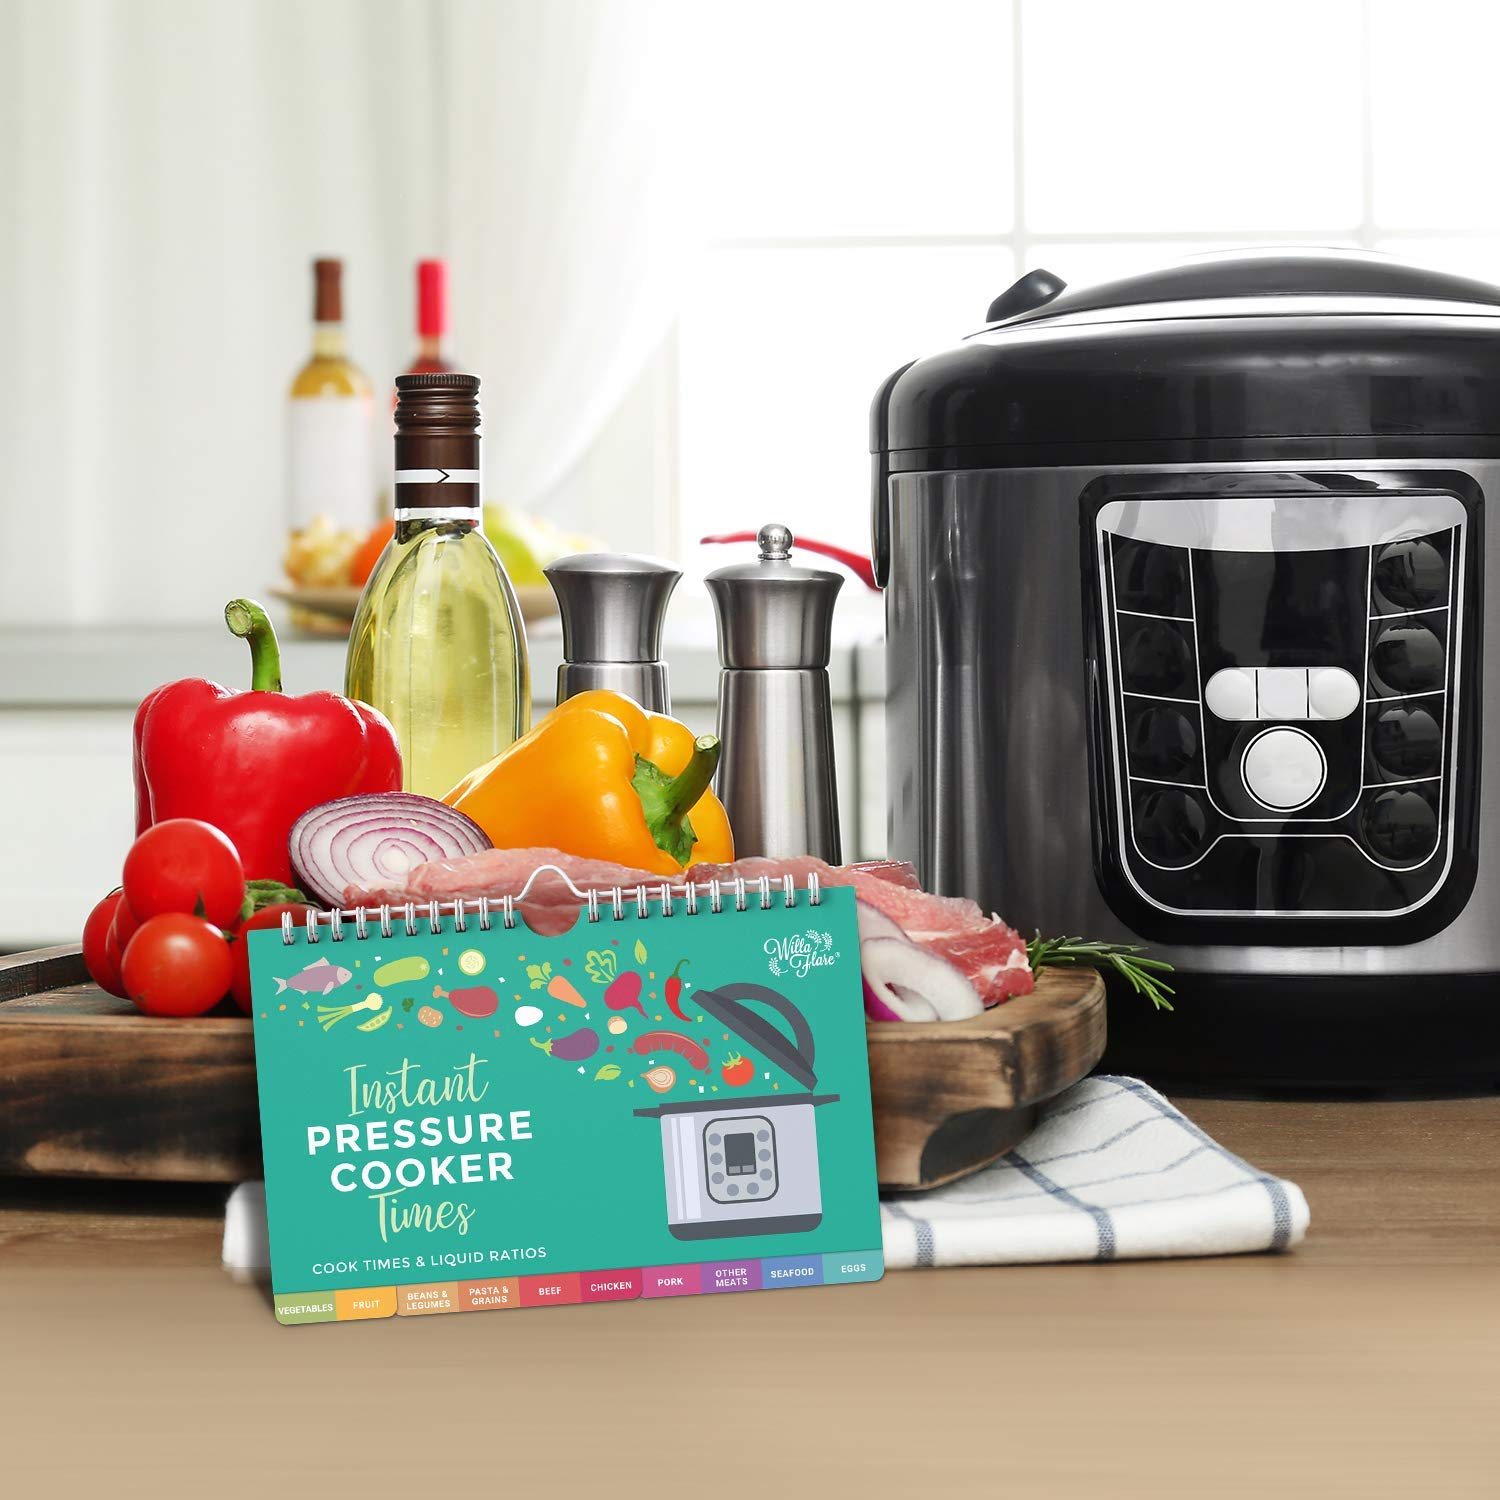 Electric Pressure Magnetic Cooker Cook Times Cheat Sheet